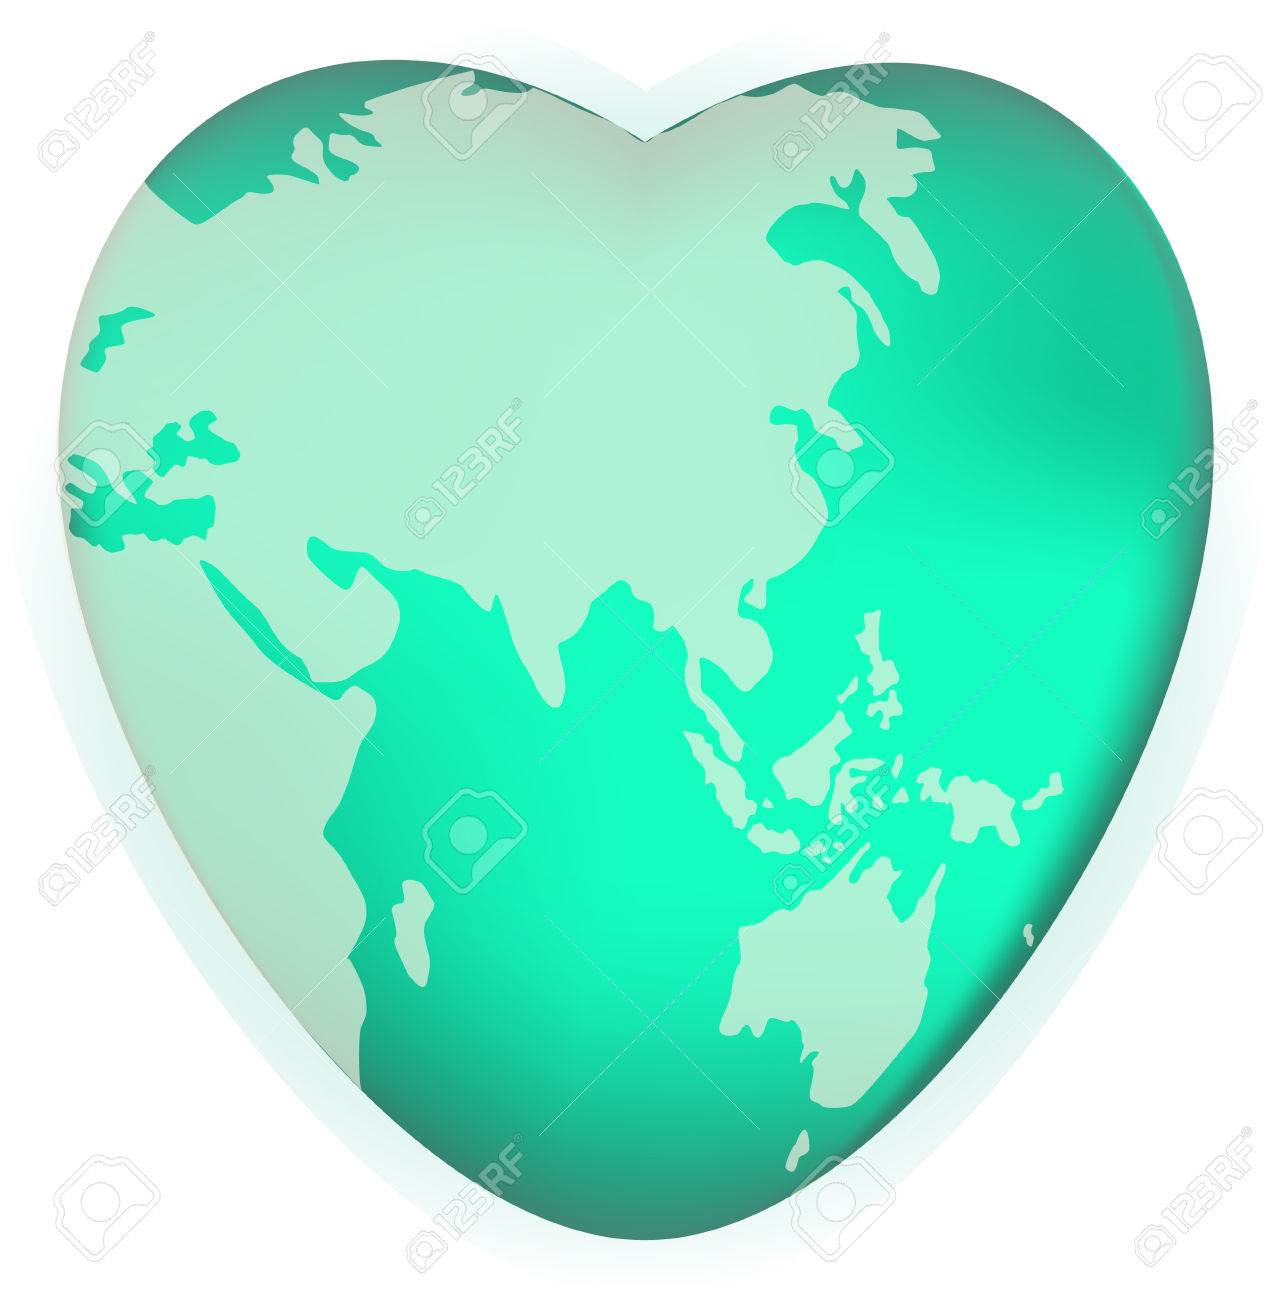 A World Globe In The Shape Of A Heart Symbol Concept For Loving